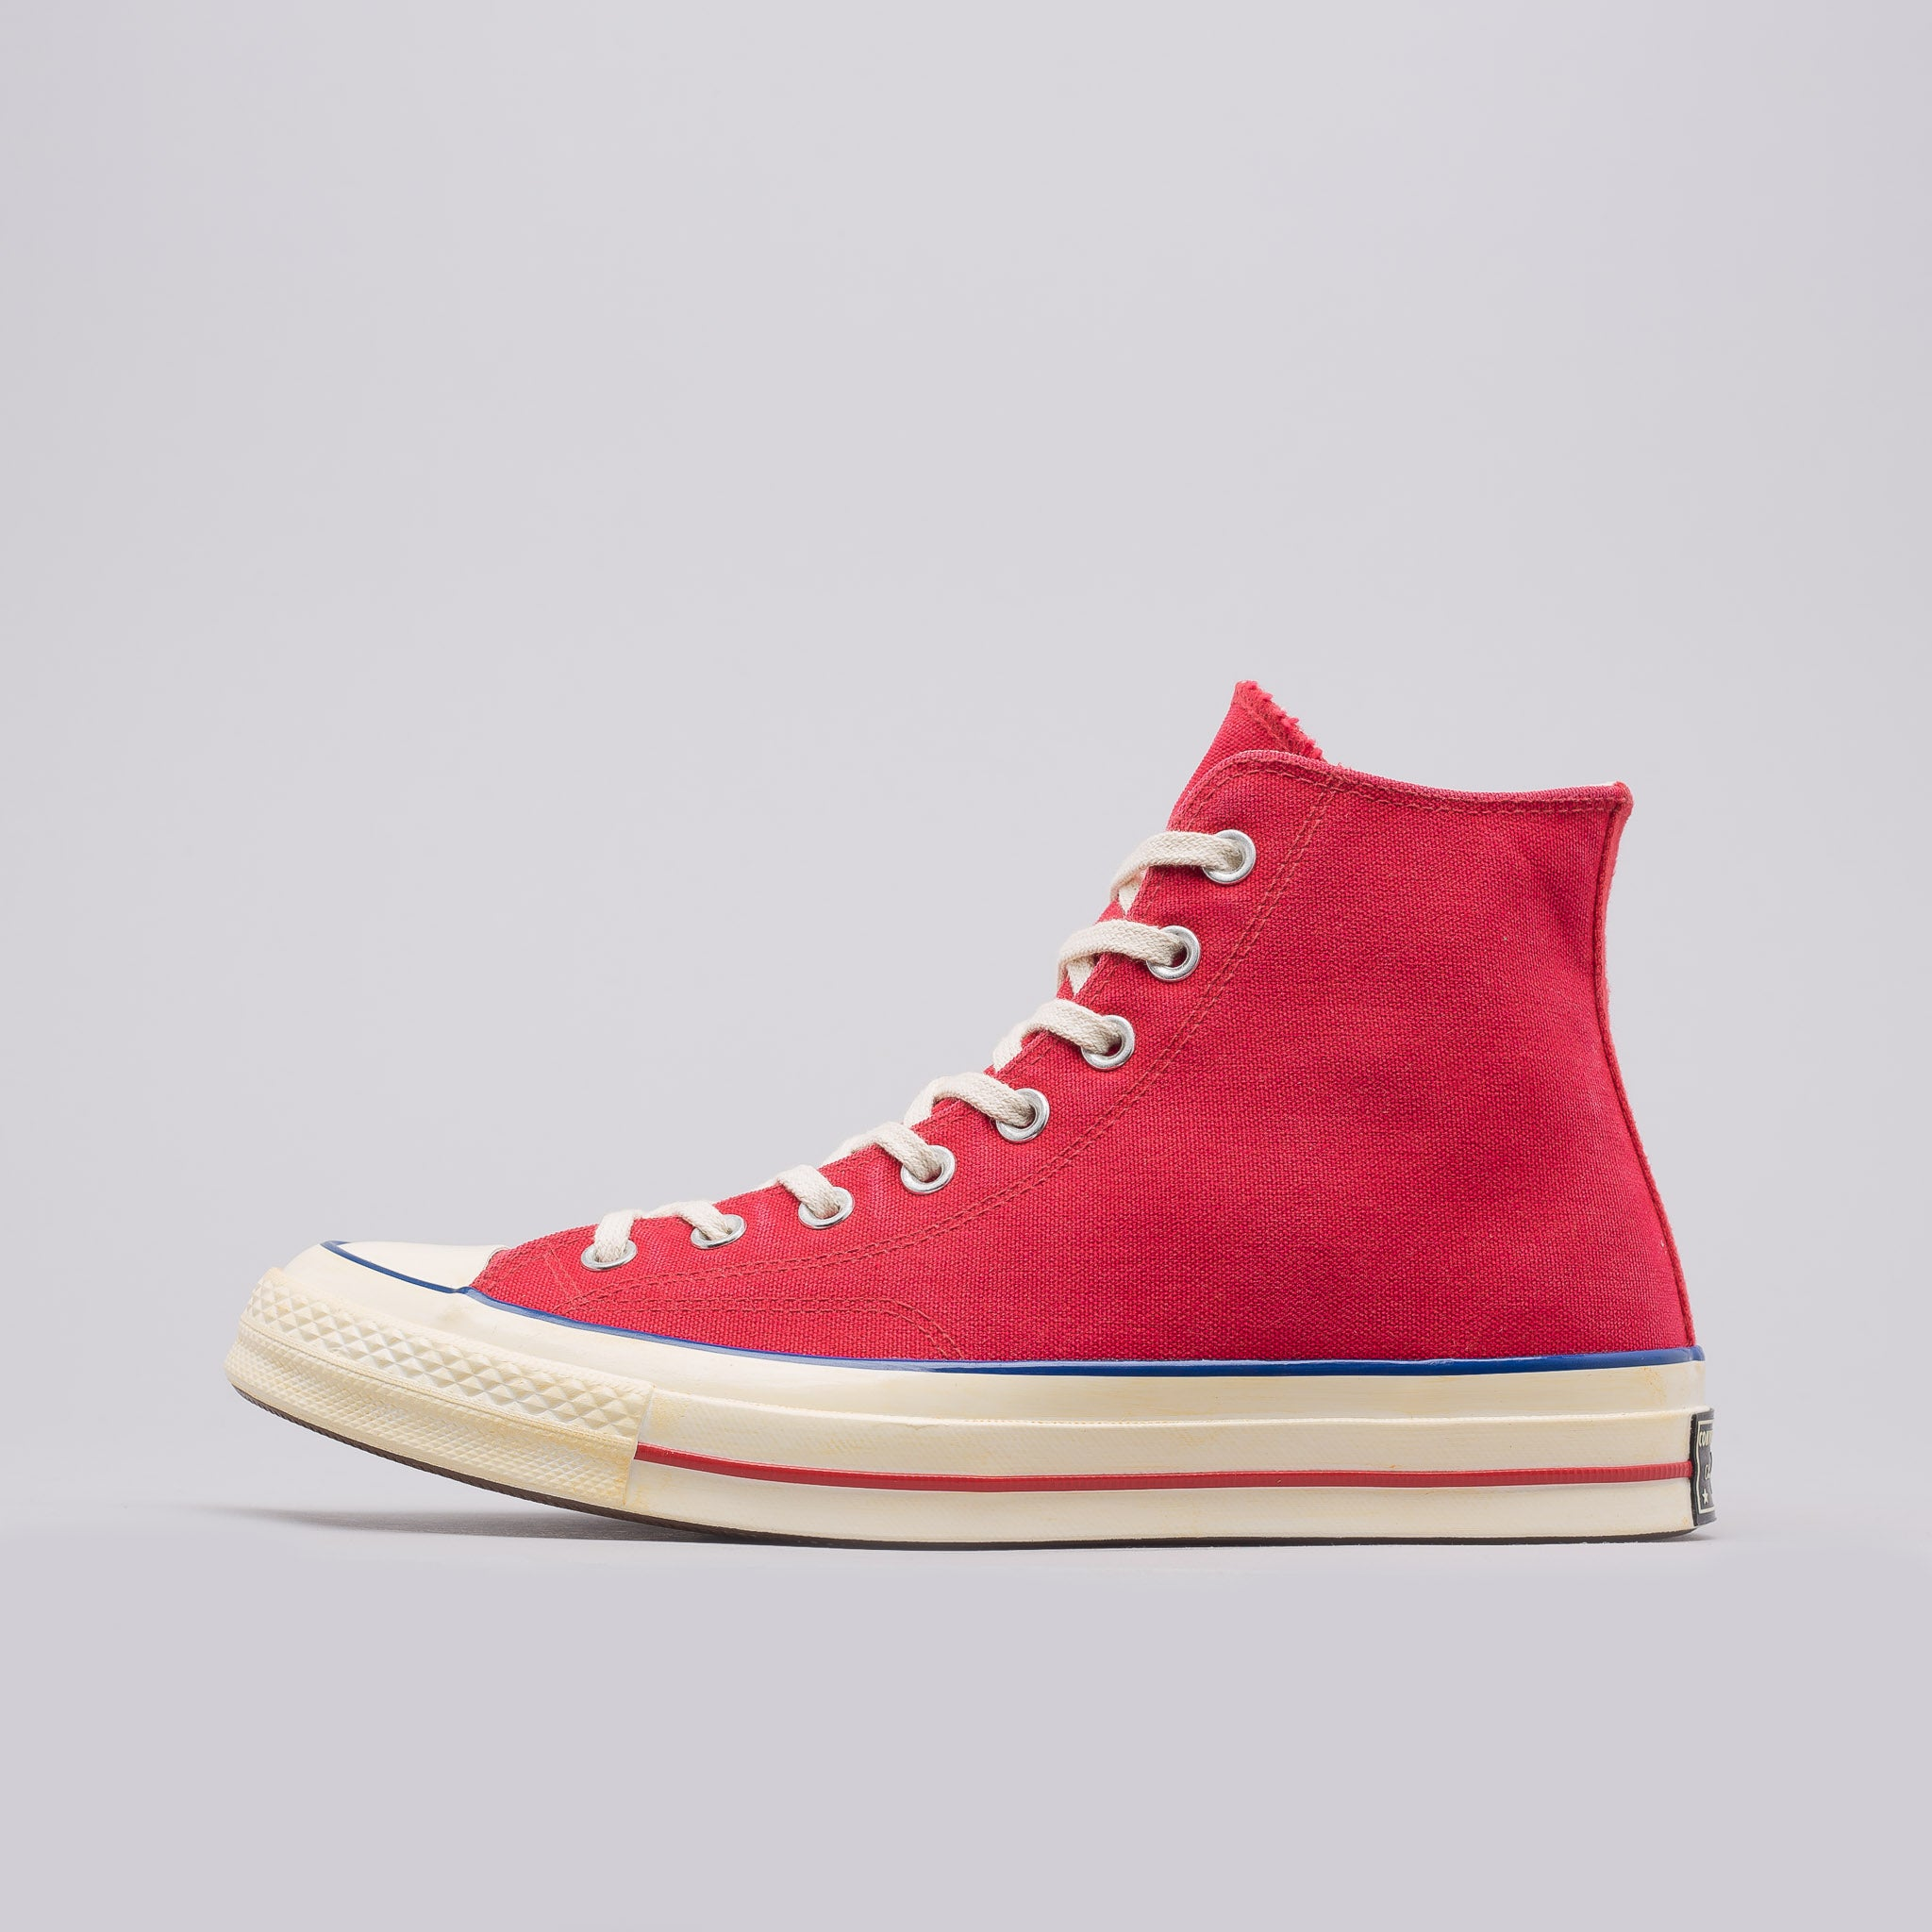 Chuck Taylor All Star 70 Hi in Red